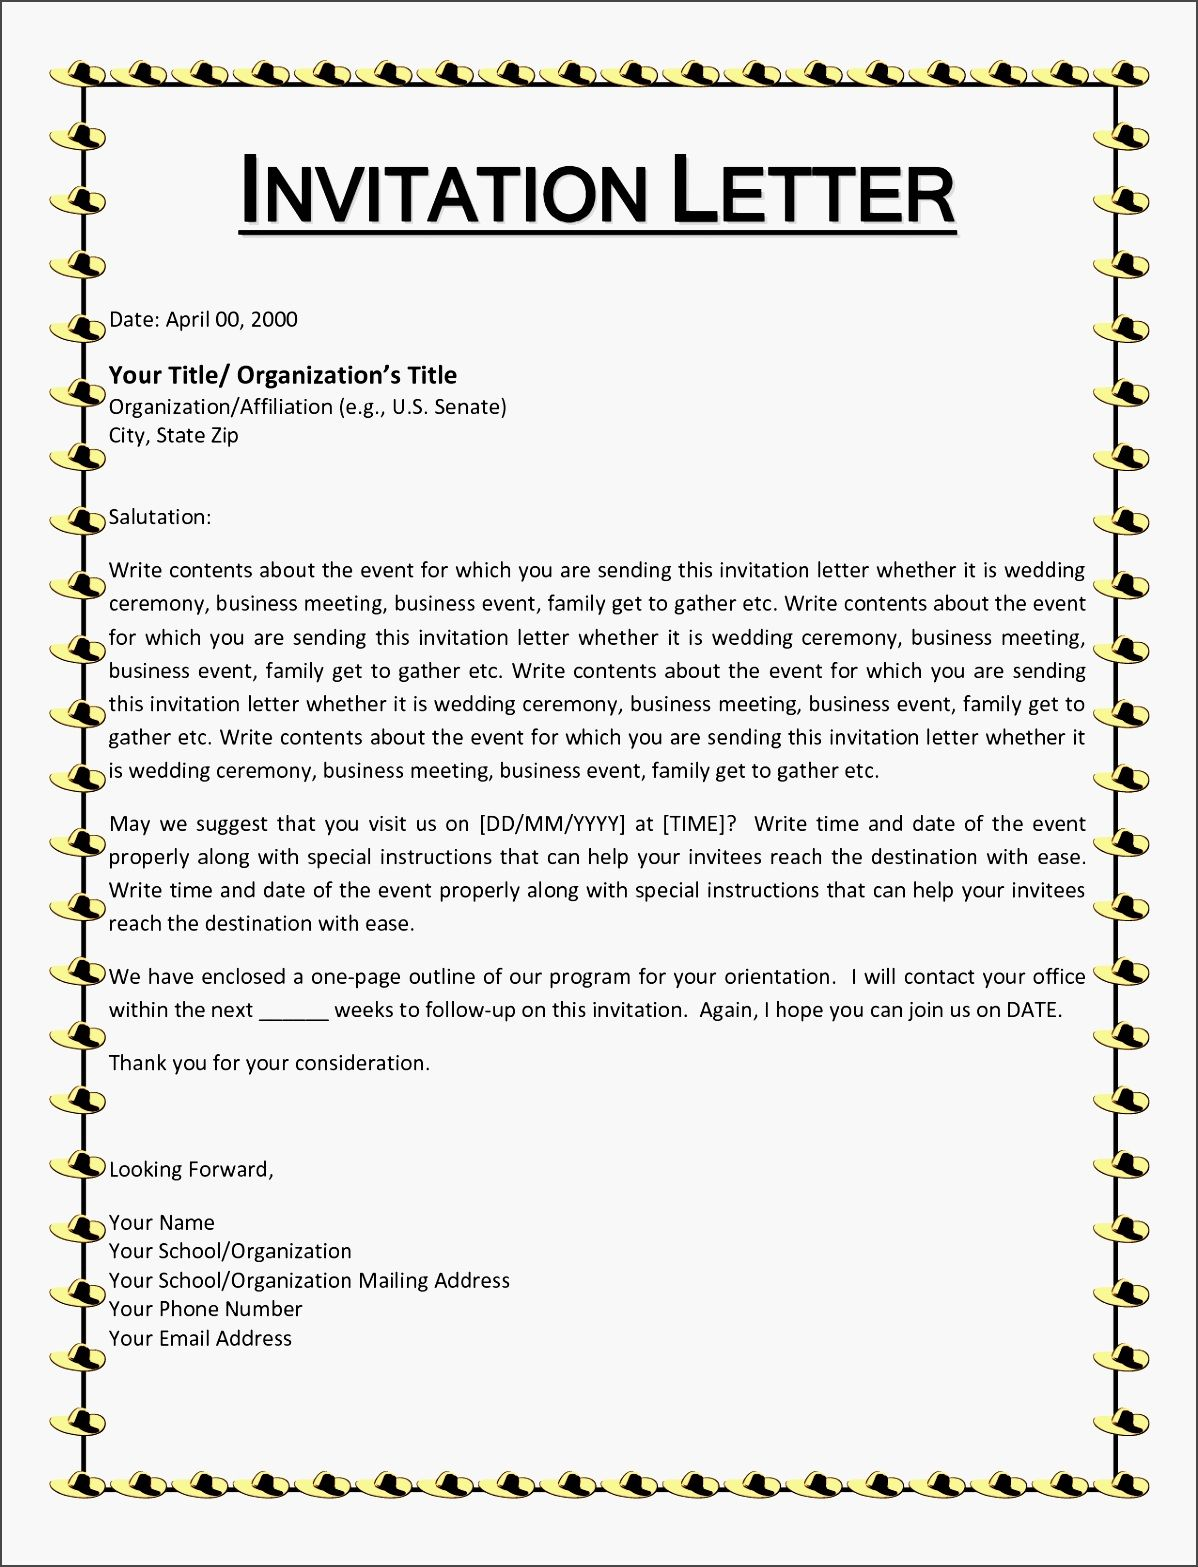 Invitation letter informal saevk beautiful wedding invitation invitation letter informal saevk beautiful wedding invitation letter informal wedding invitation letter stopboris